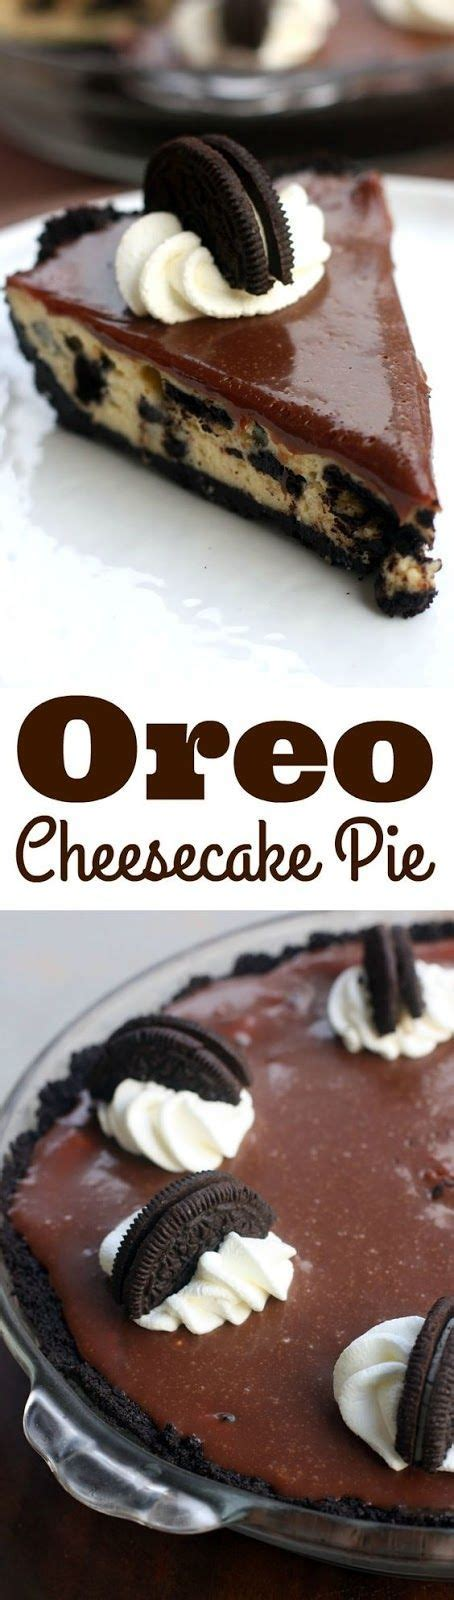 oreo cheesecake mom and fancy drinks on pinterest 17 best ideas about oreo pops on pinterest oreo cake